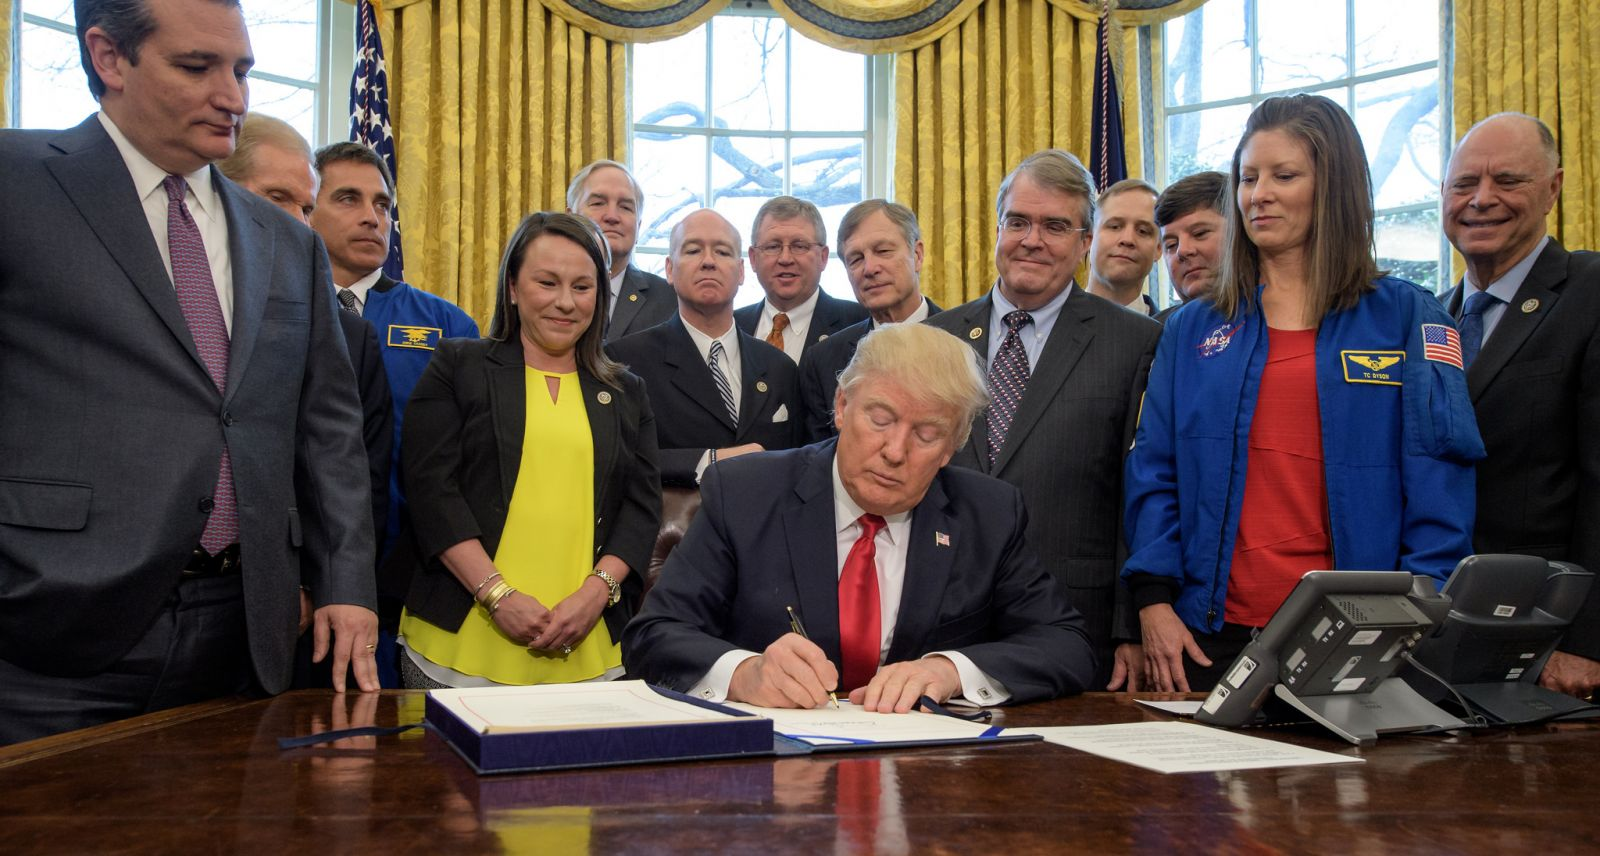 Donald Trump signs the NASA authorization act of 2017